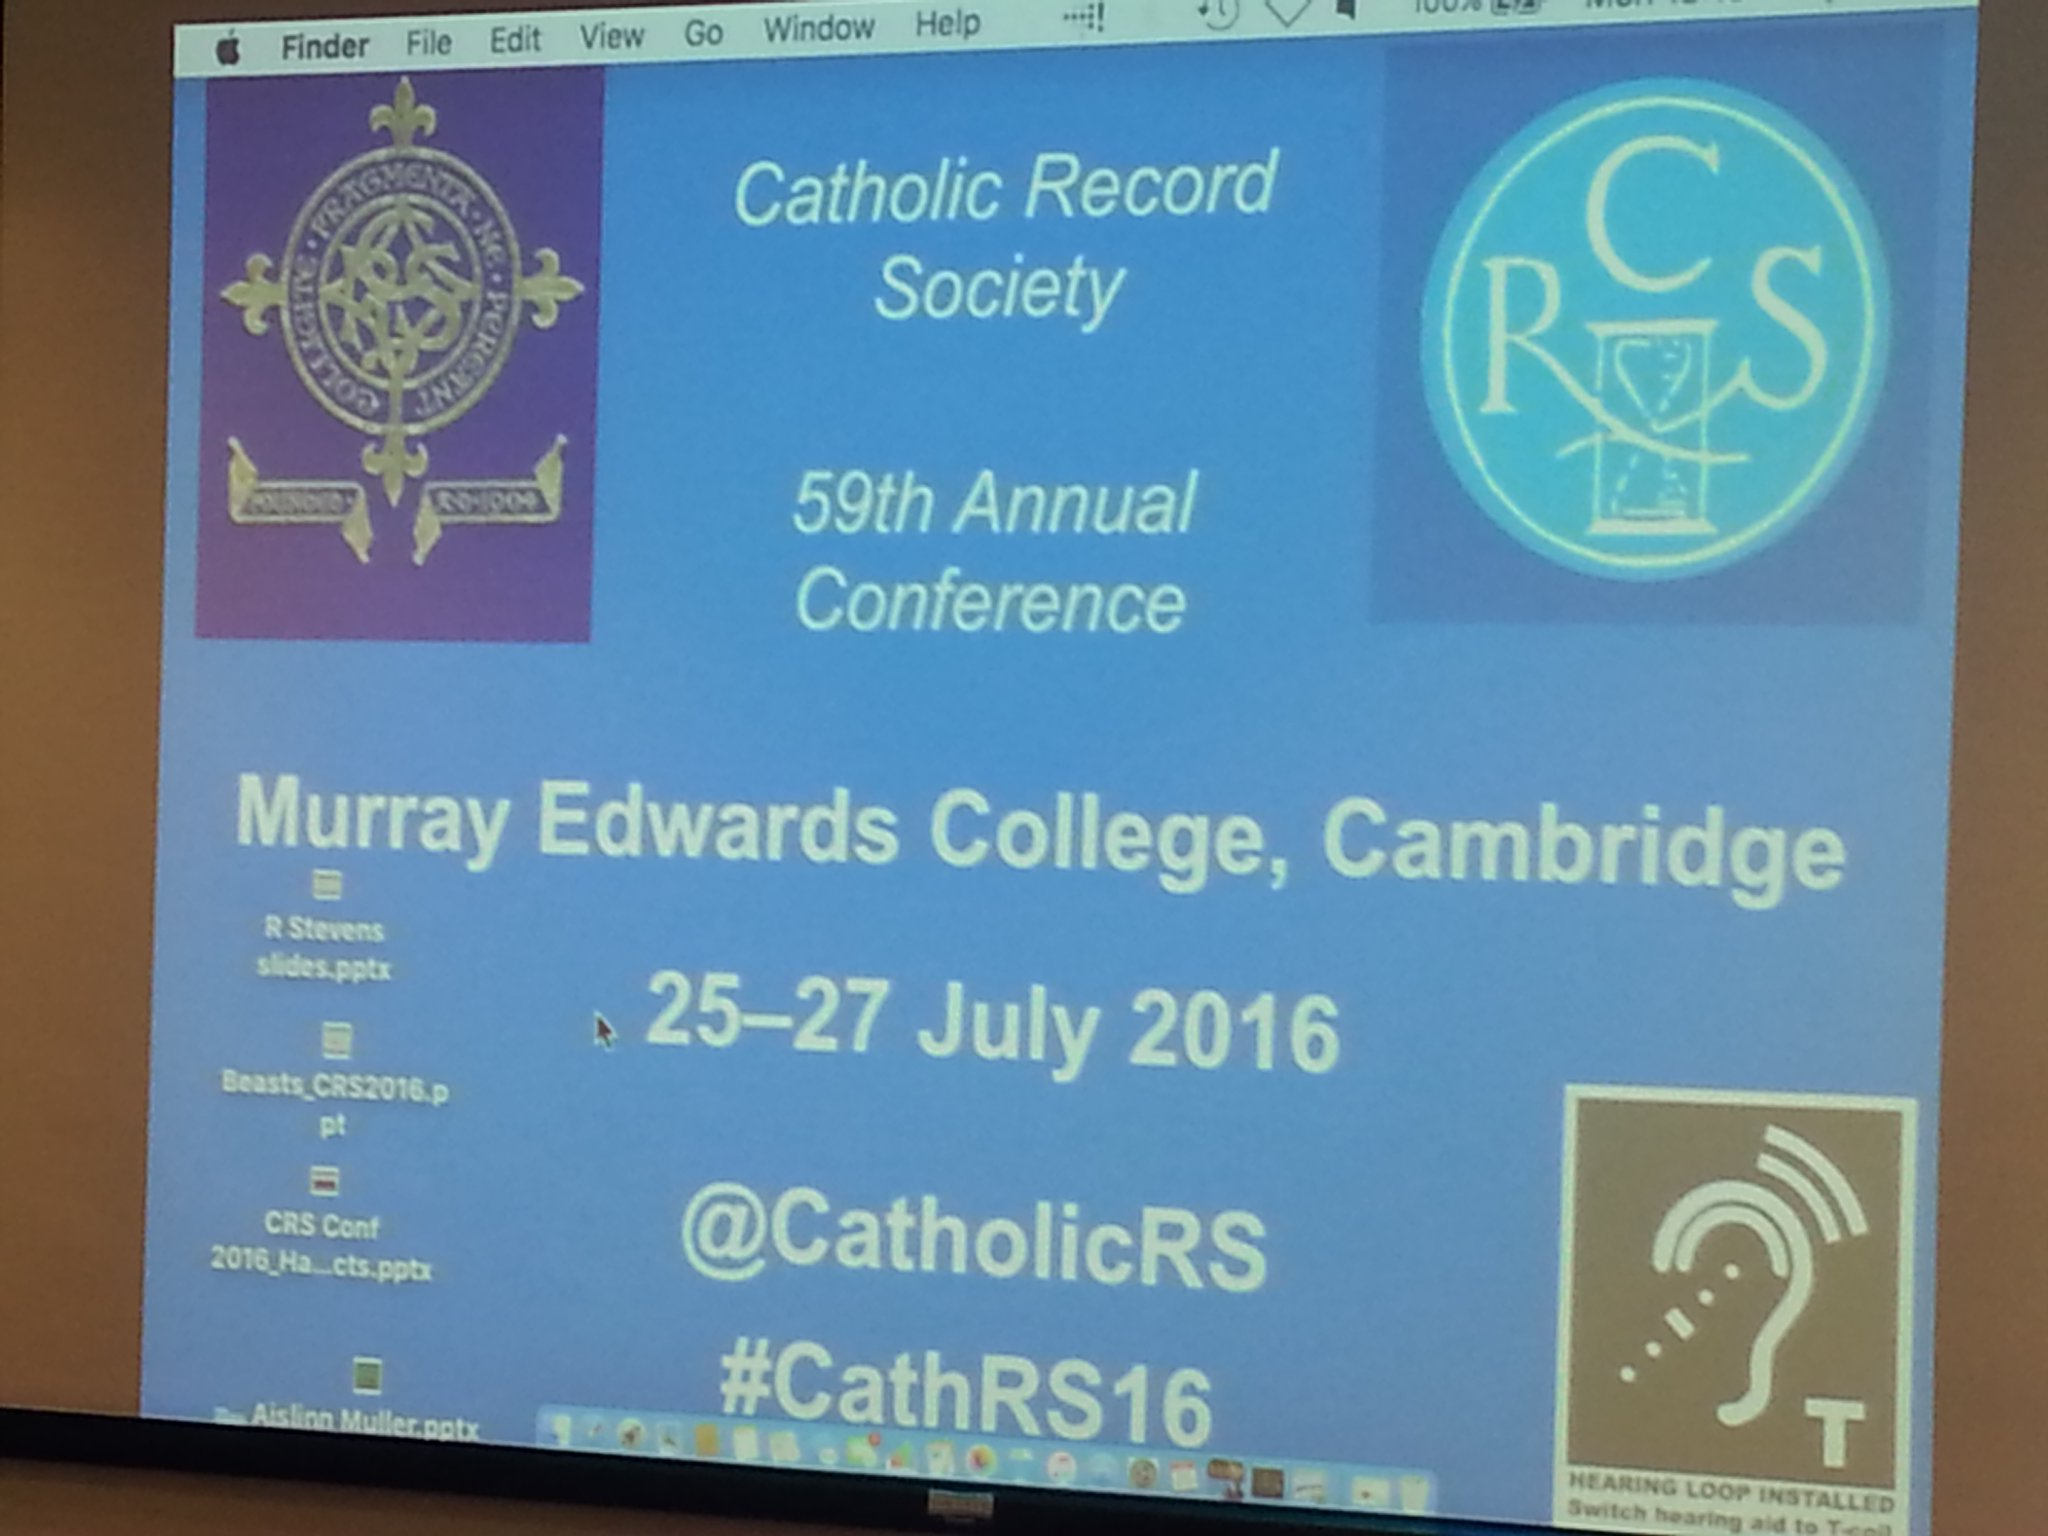 Eager for the start of #CathRS16 @CatholicRS16, organised this year by @onslies @HannahJane85 https://t.co/qtxgBSy7wf